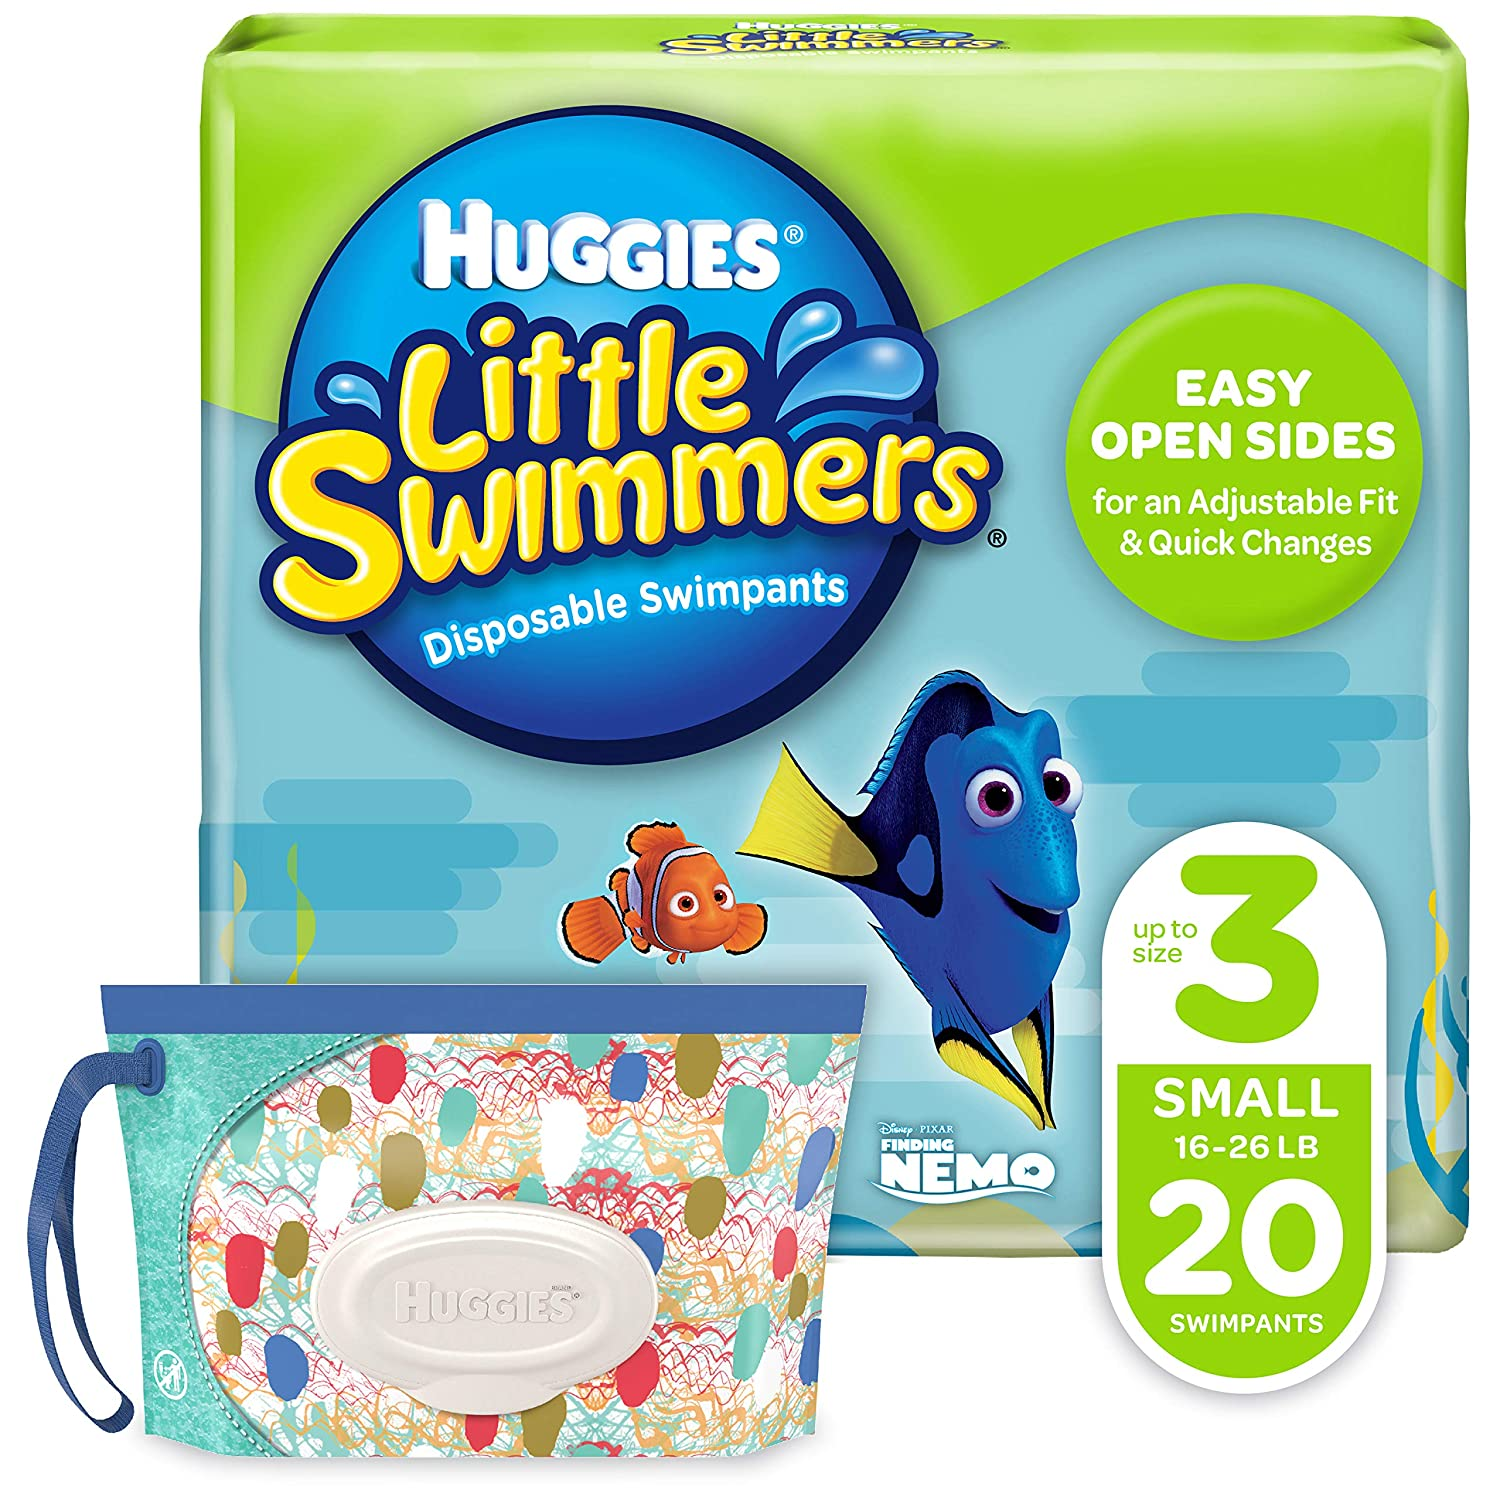 9 Huggies Little Swimmers Disposable Swim Diaper